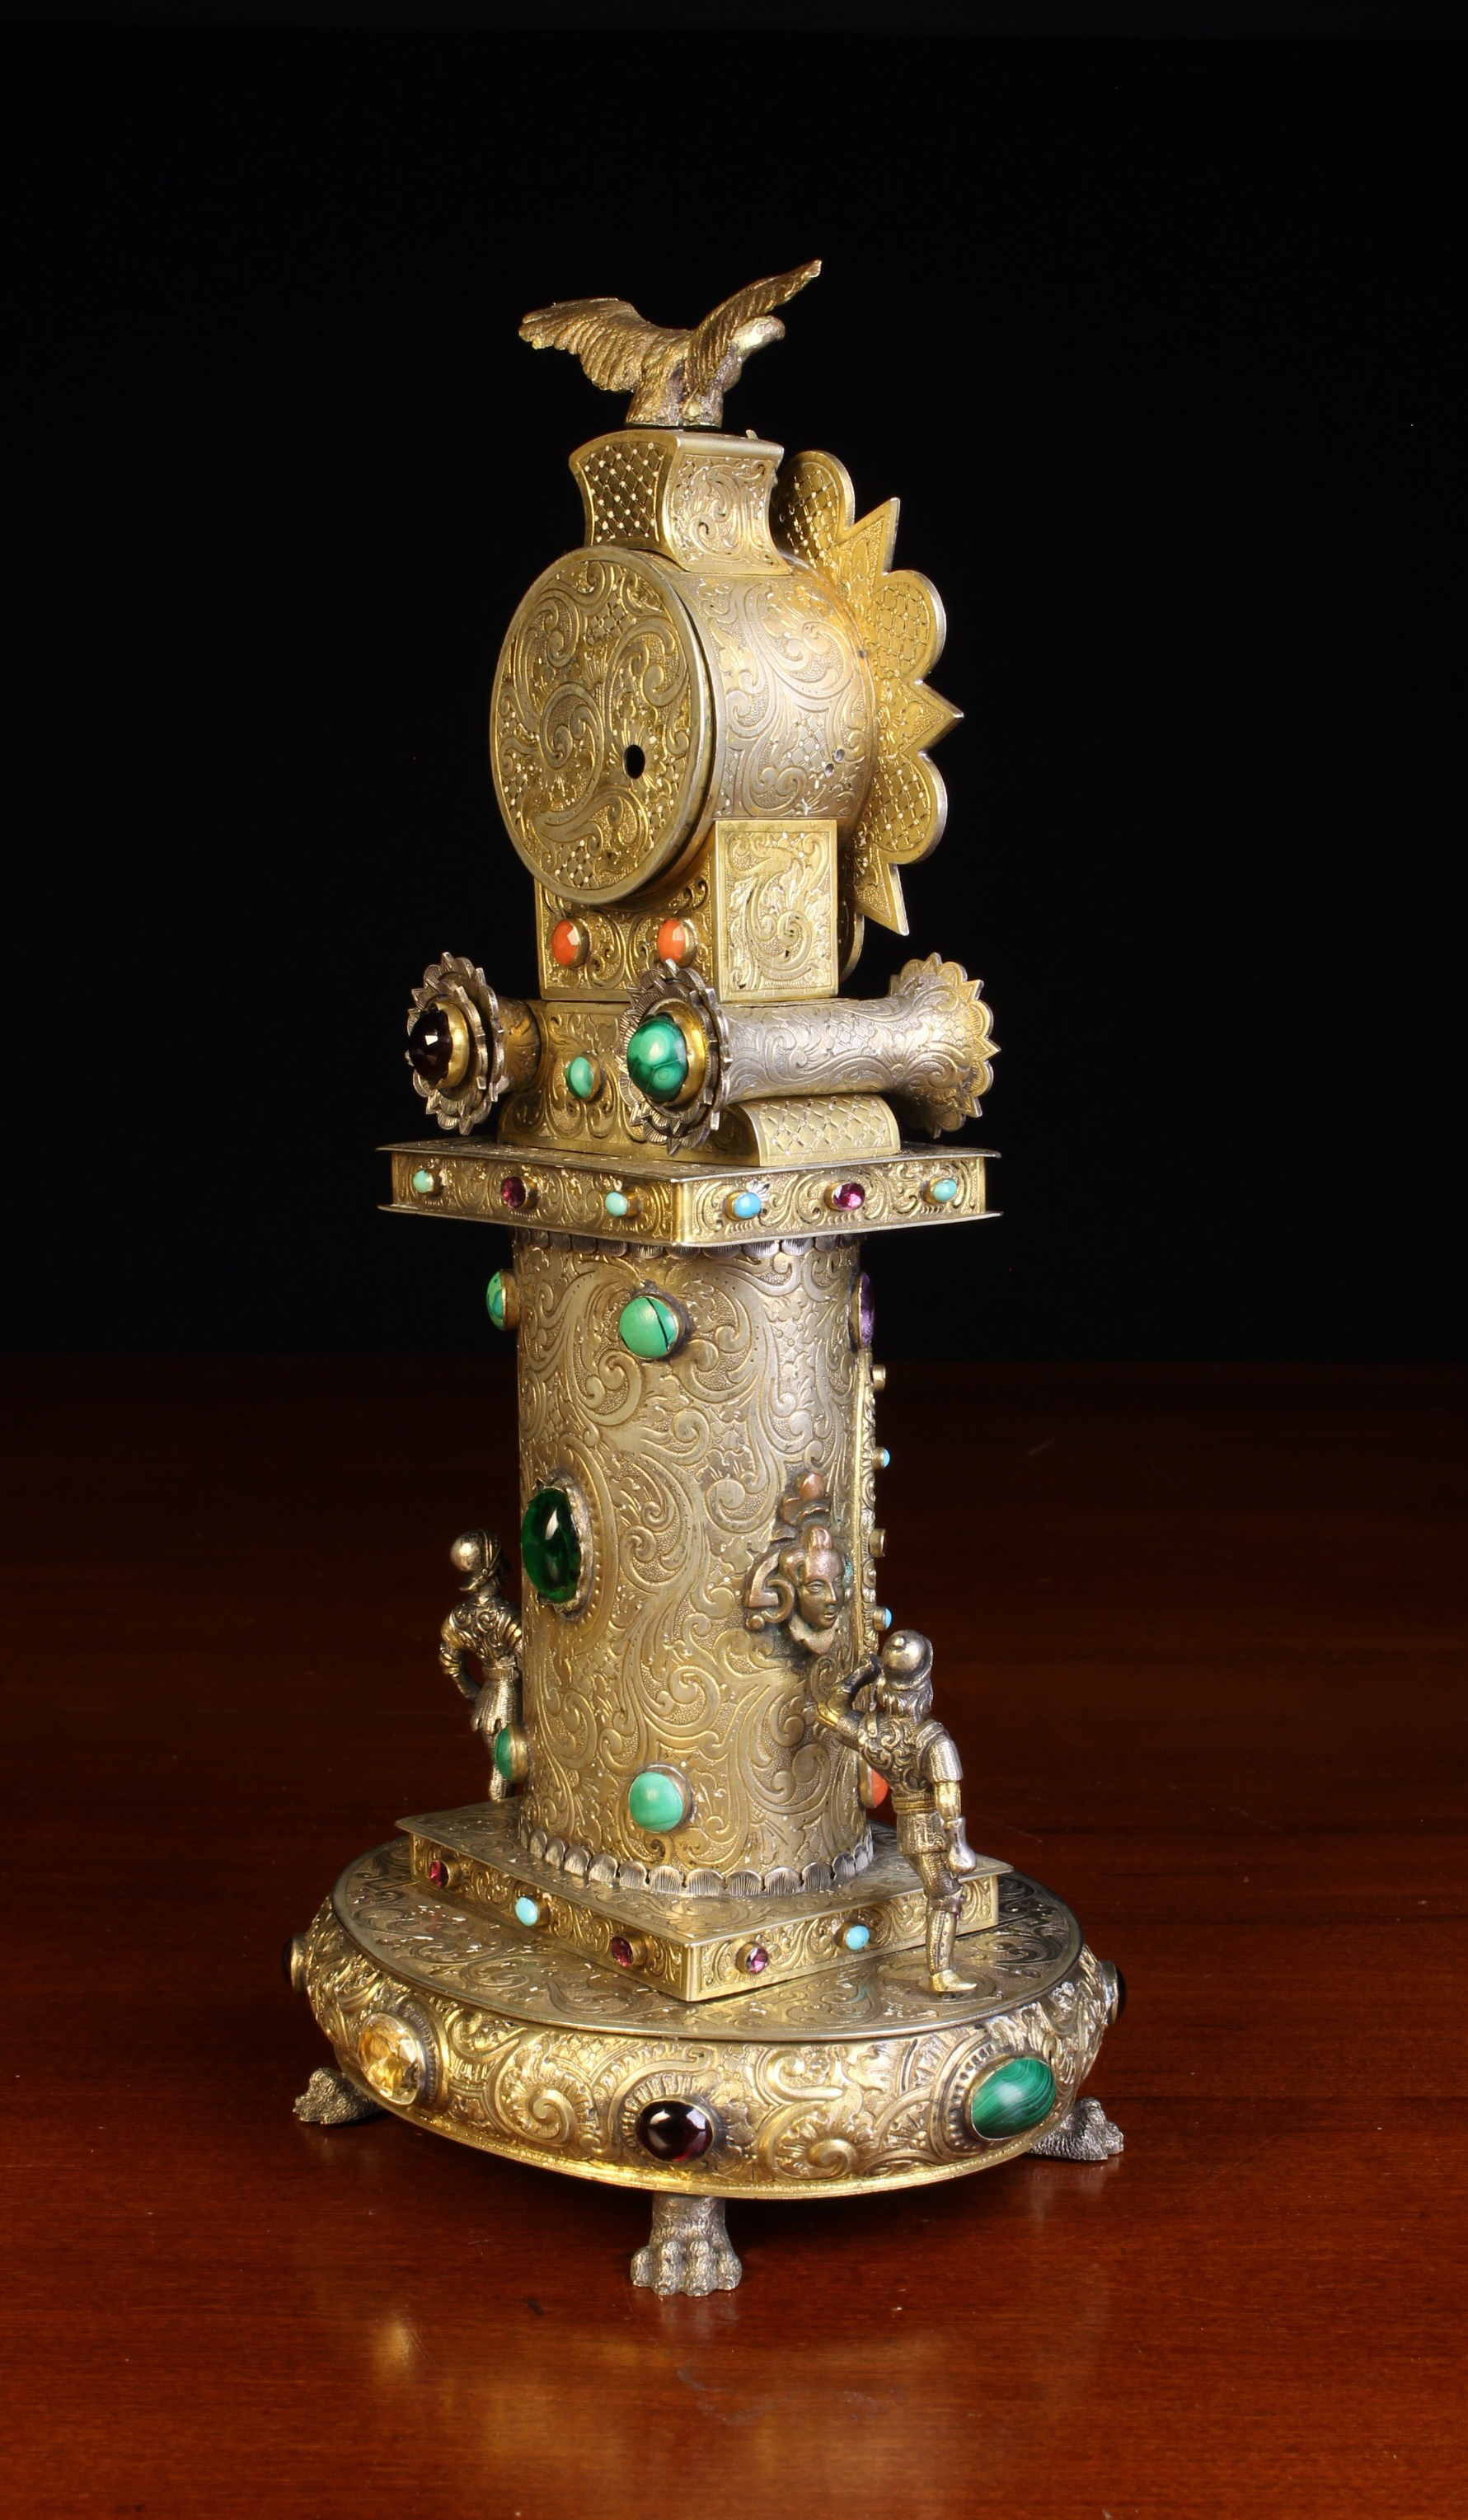 A 19th Century Viennese Silver & Gilt Metal Table Clock encrusted with jewels. - Image 3 of 4